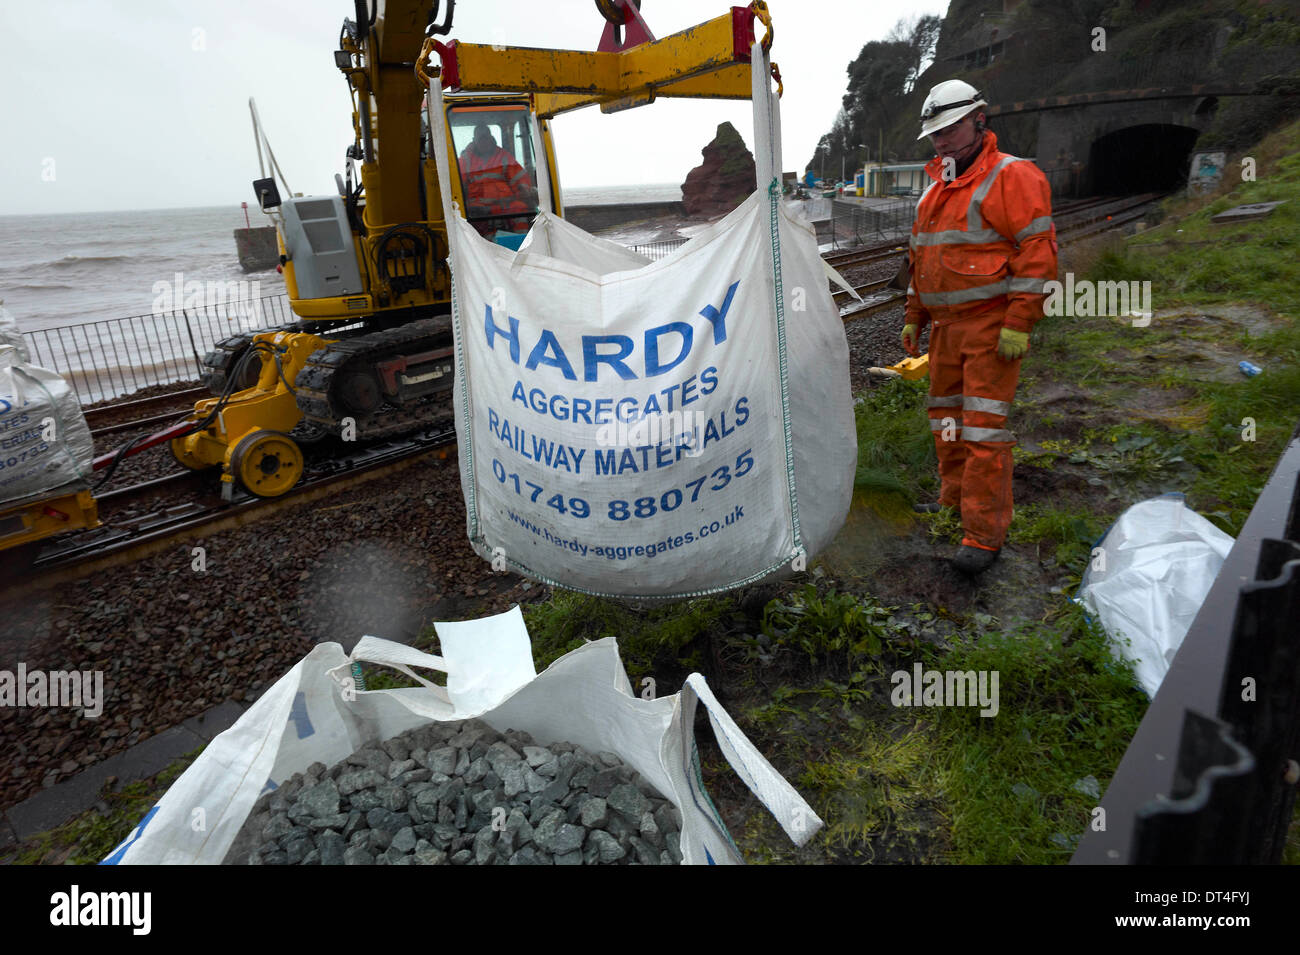 Dawlish, UK. 8th Feb, 2014. Aggregate is loaded onto a rail carriage to begin repairing the severed rail  line at Dawlish in Devon England after the severe storms. Credit Paul Glendell 8th Feb 2014 - Stock Image